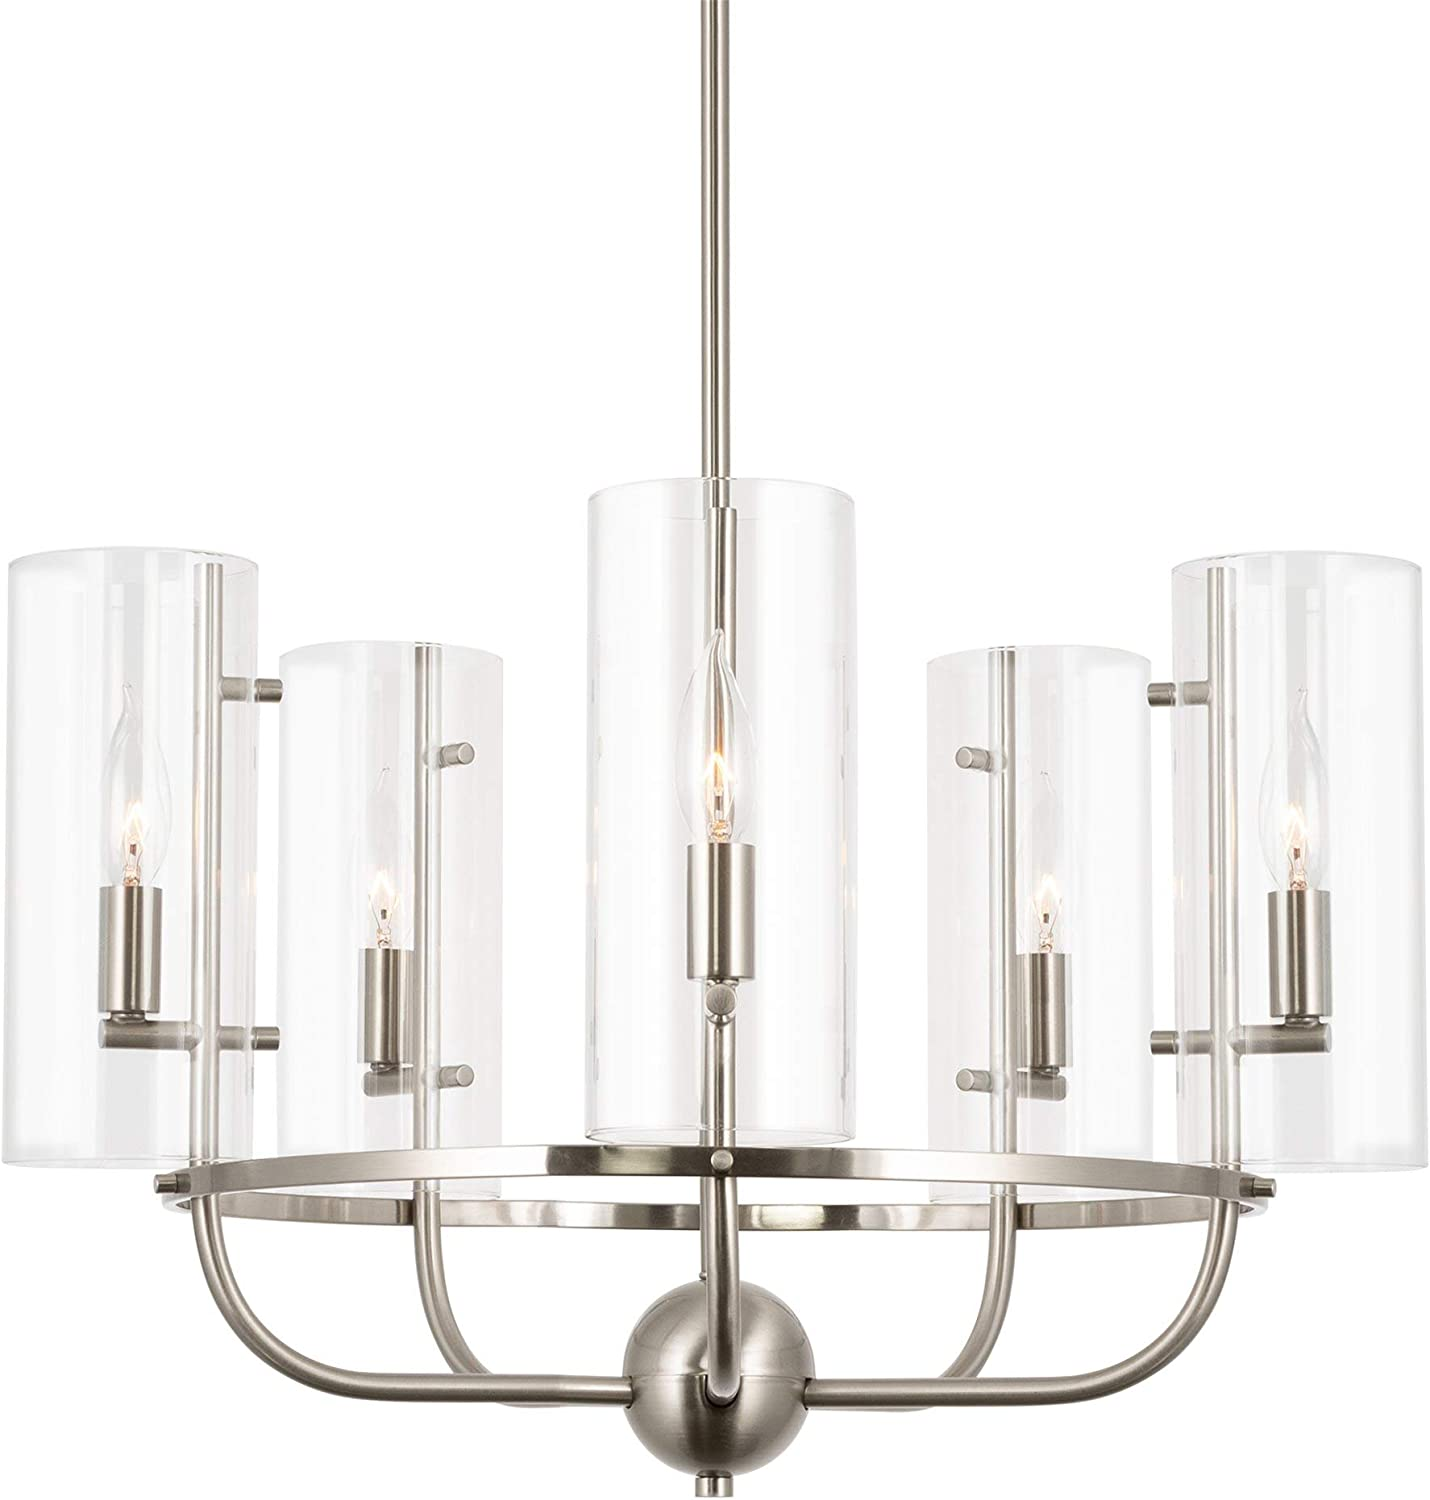 """Kira Home Inara 22.5"""" Large Round 5-Light Modern Chandelier + Clear Glass Shades, Adjustable Height, Brushed Nickel Finish"""